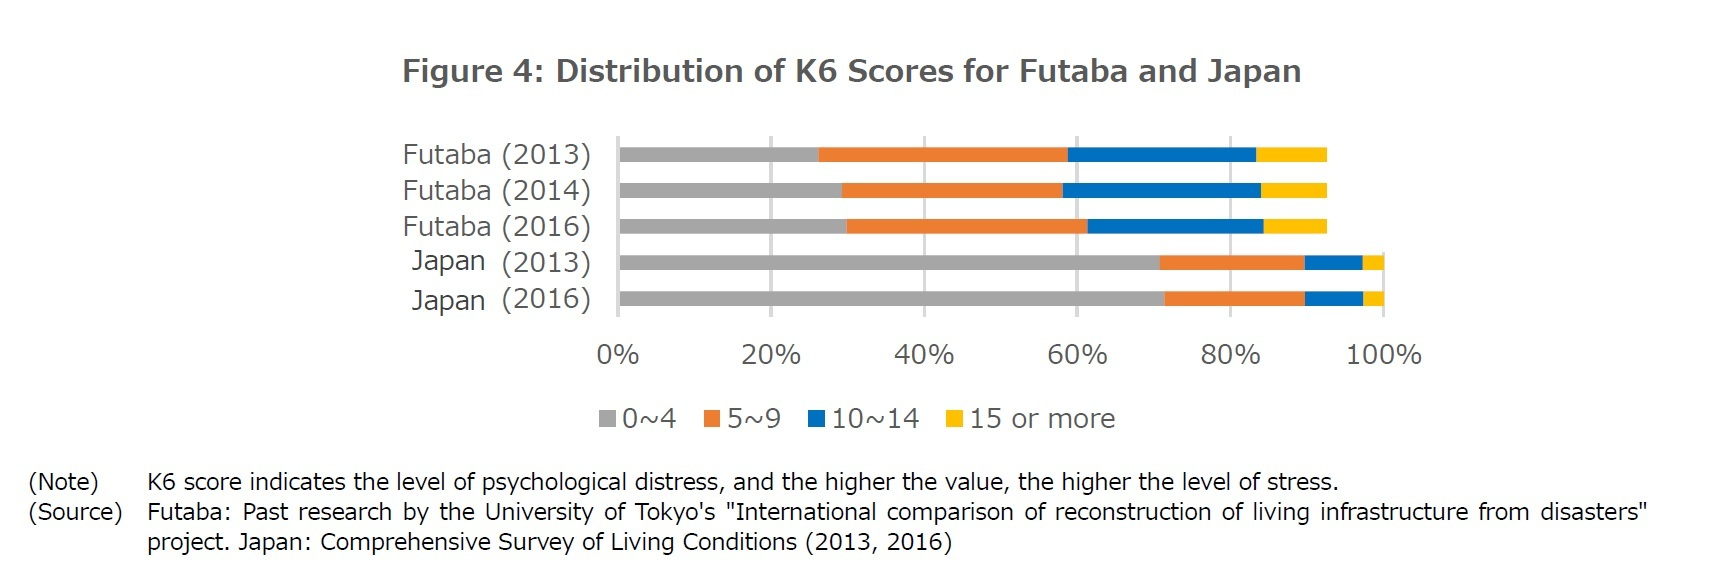 Figure 4: Distribution of K6 Scores for Futaba and Japan